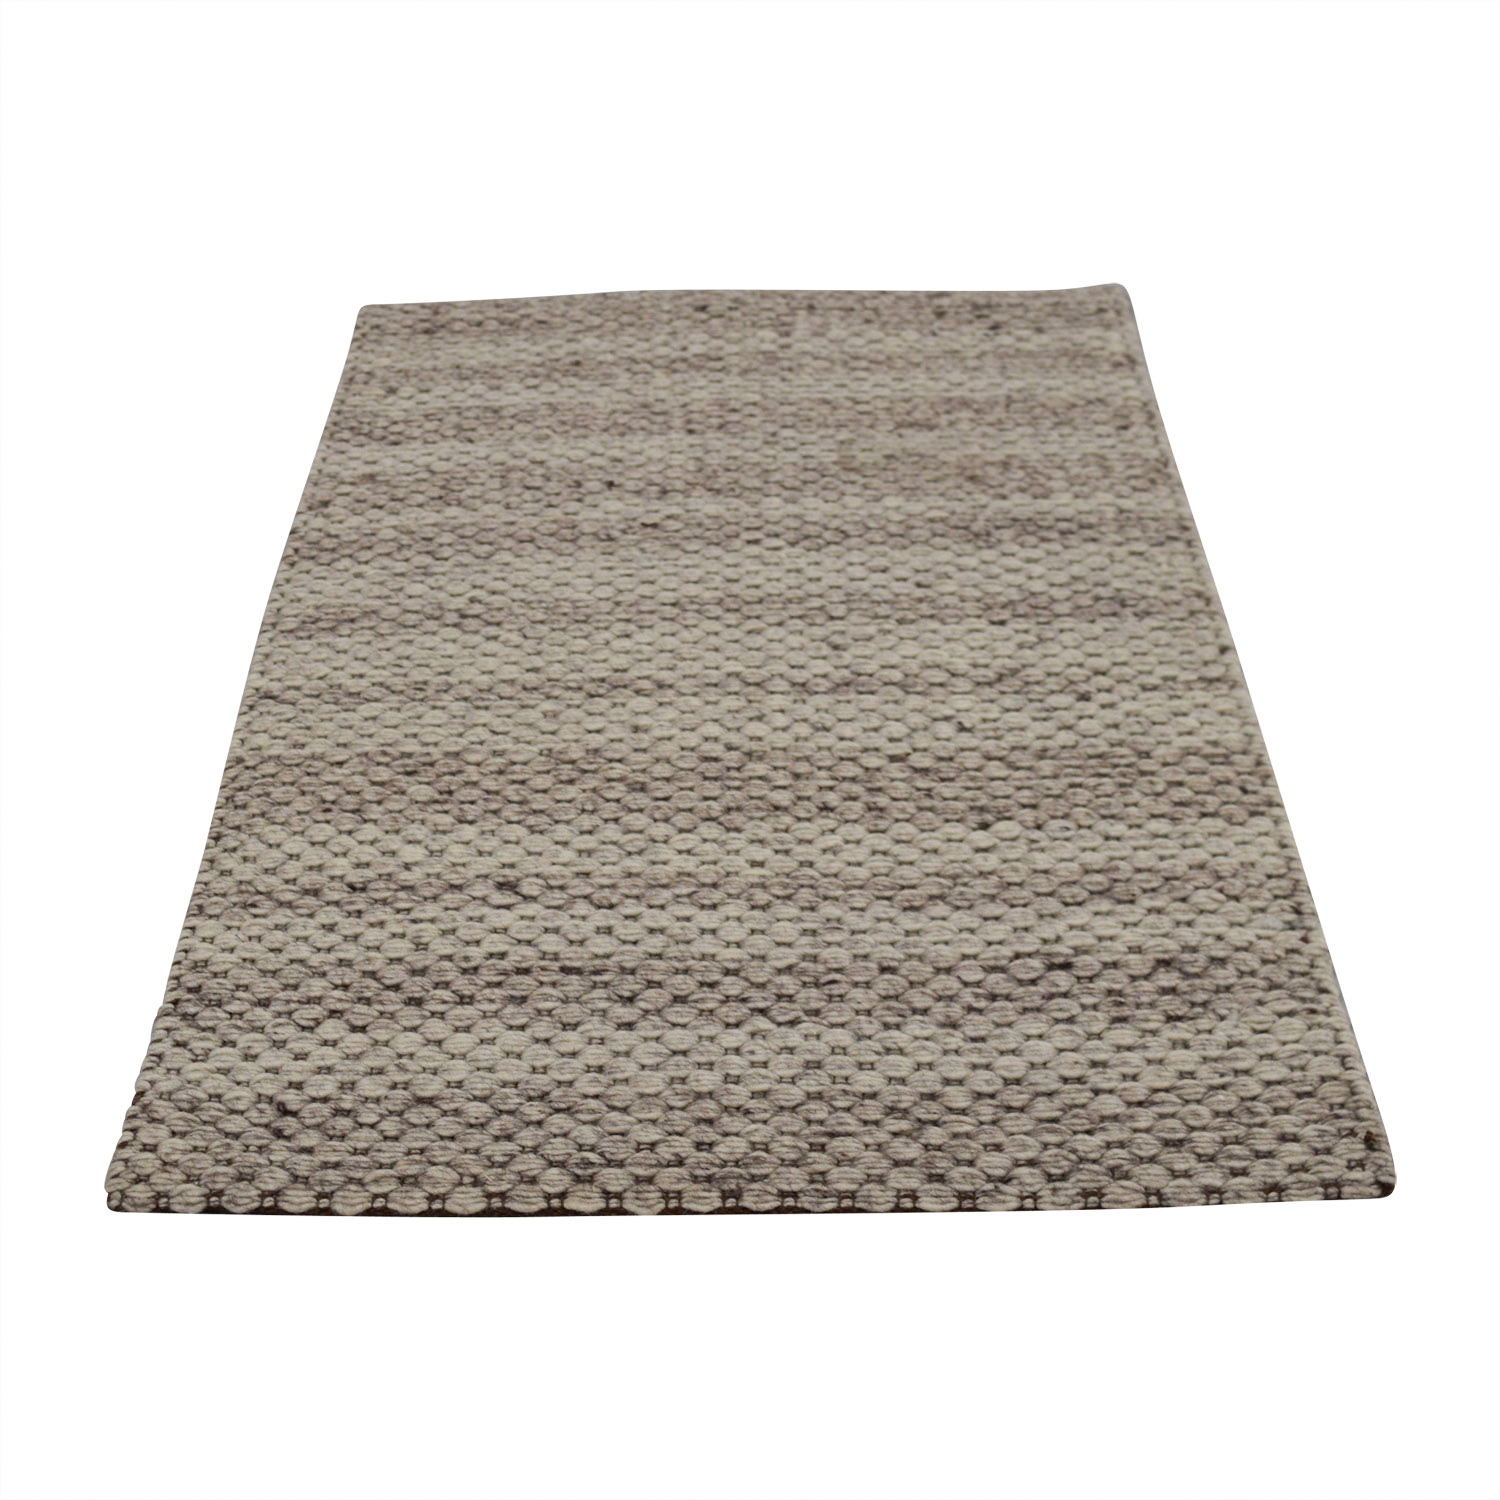 Obeetee Obeetee Tan and Beige Wool Rug for sale